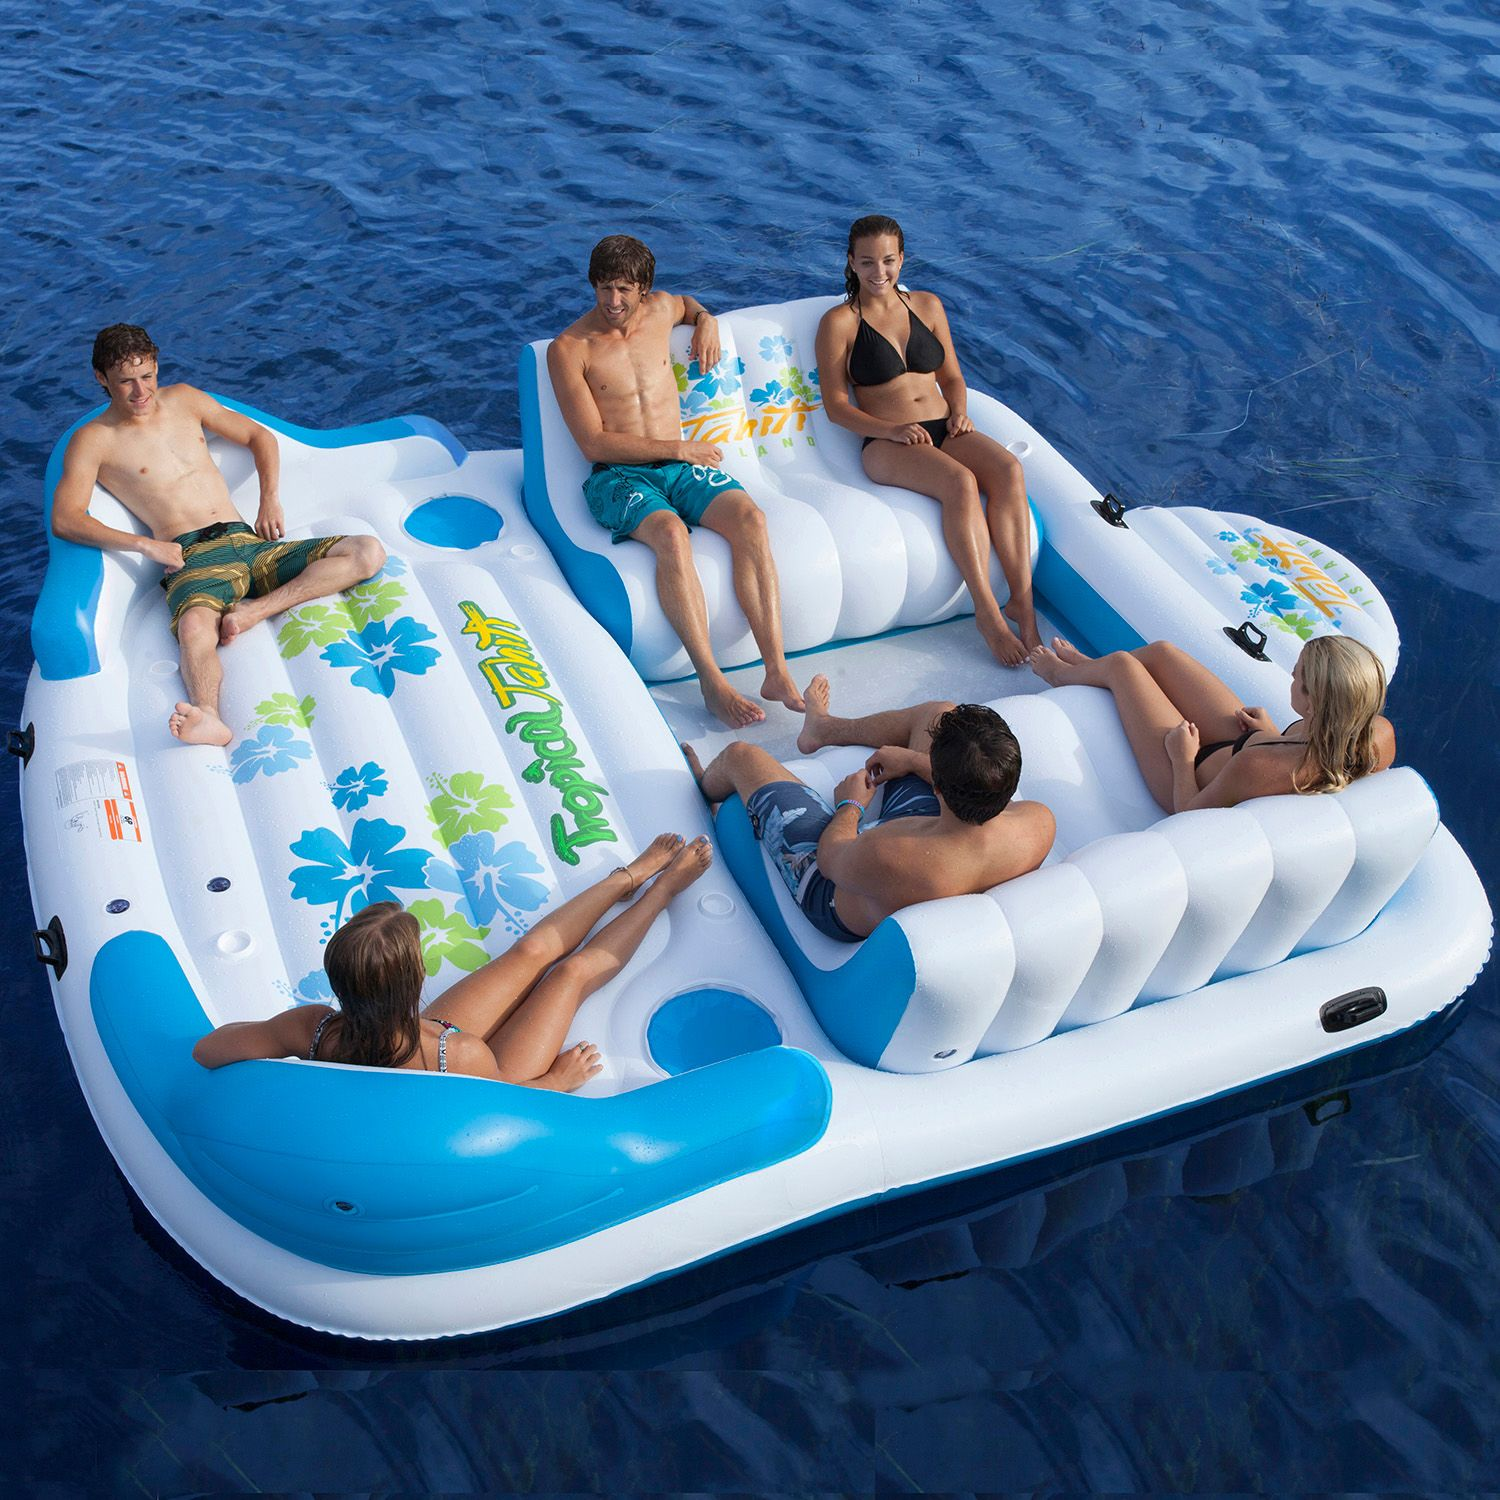 Tropical Tahiti Inflatable Floating Island Raft 7 Person Sofa Cooler Lounge Sofa New Free Shipping. $ view deal Tropical Tahiti Inflatable Raft Pool Float Ocean Lake 7 Person Floating Island New New Inflatable Raft Pool Lake Ocean 6 Person Tropical Tahiti Floating Island New Free Shipping.